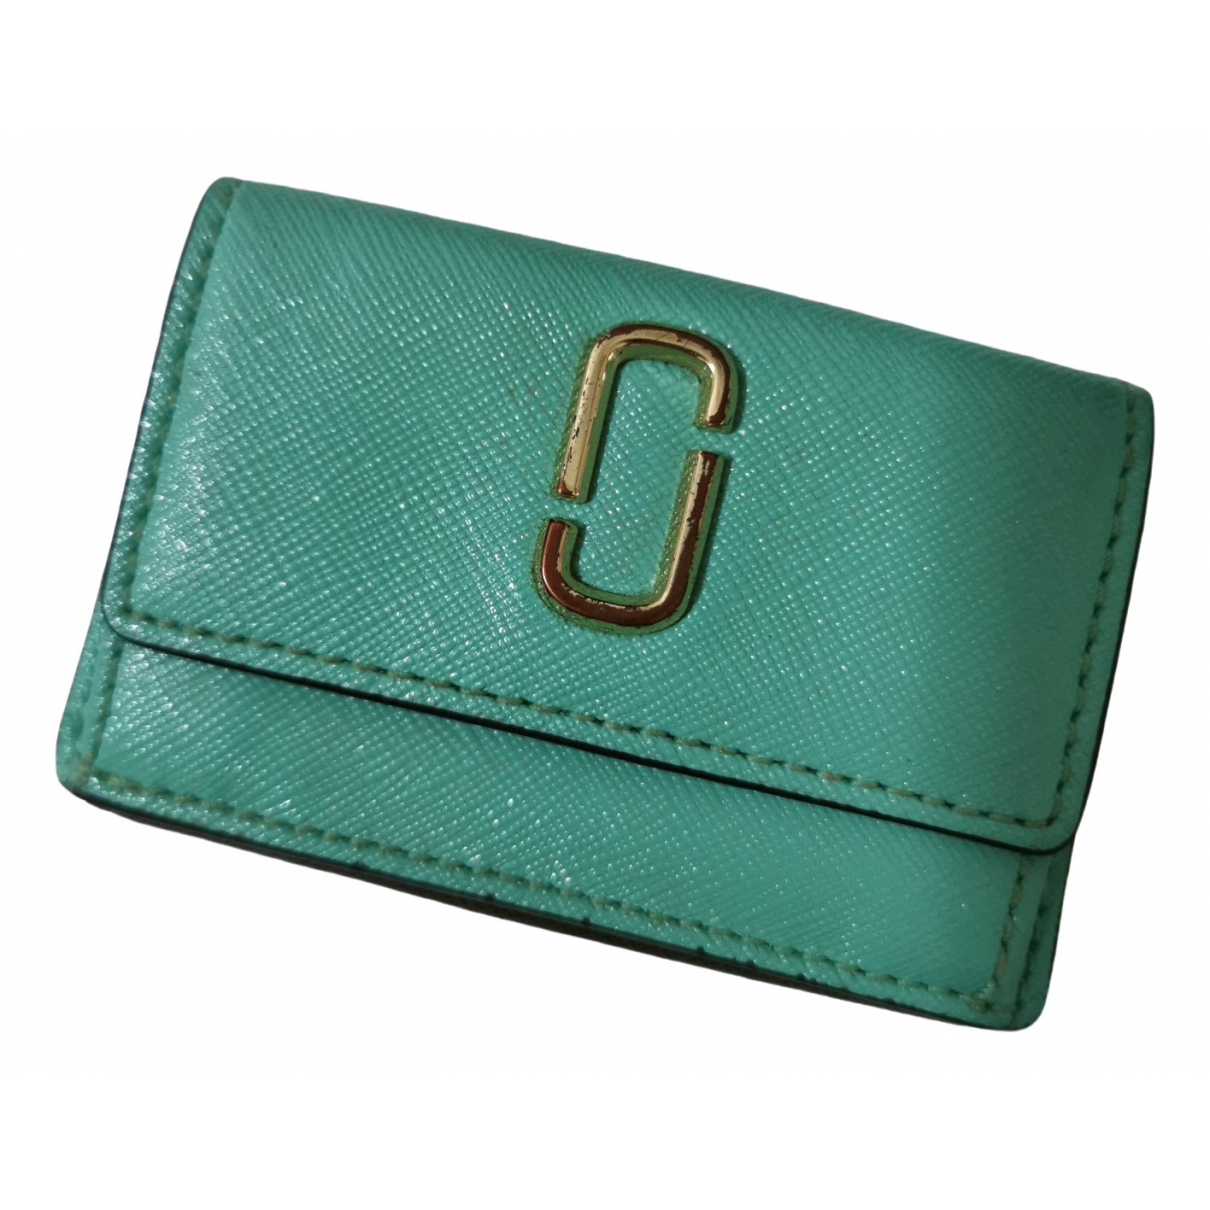 Marc Jacobs \N Turquoise Leather wallet for Women \N